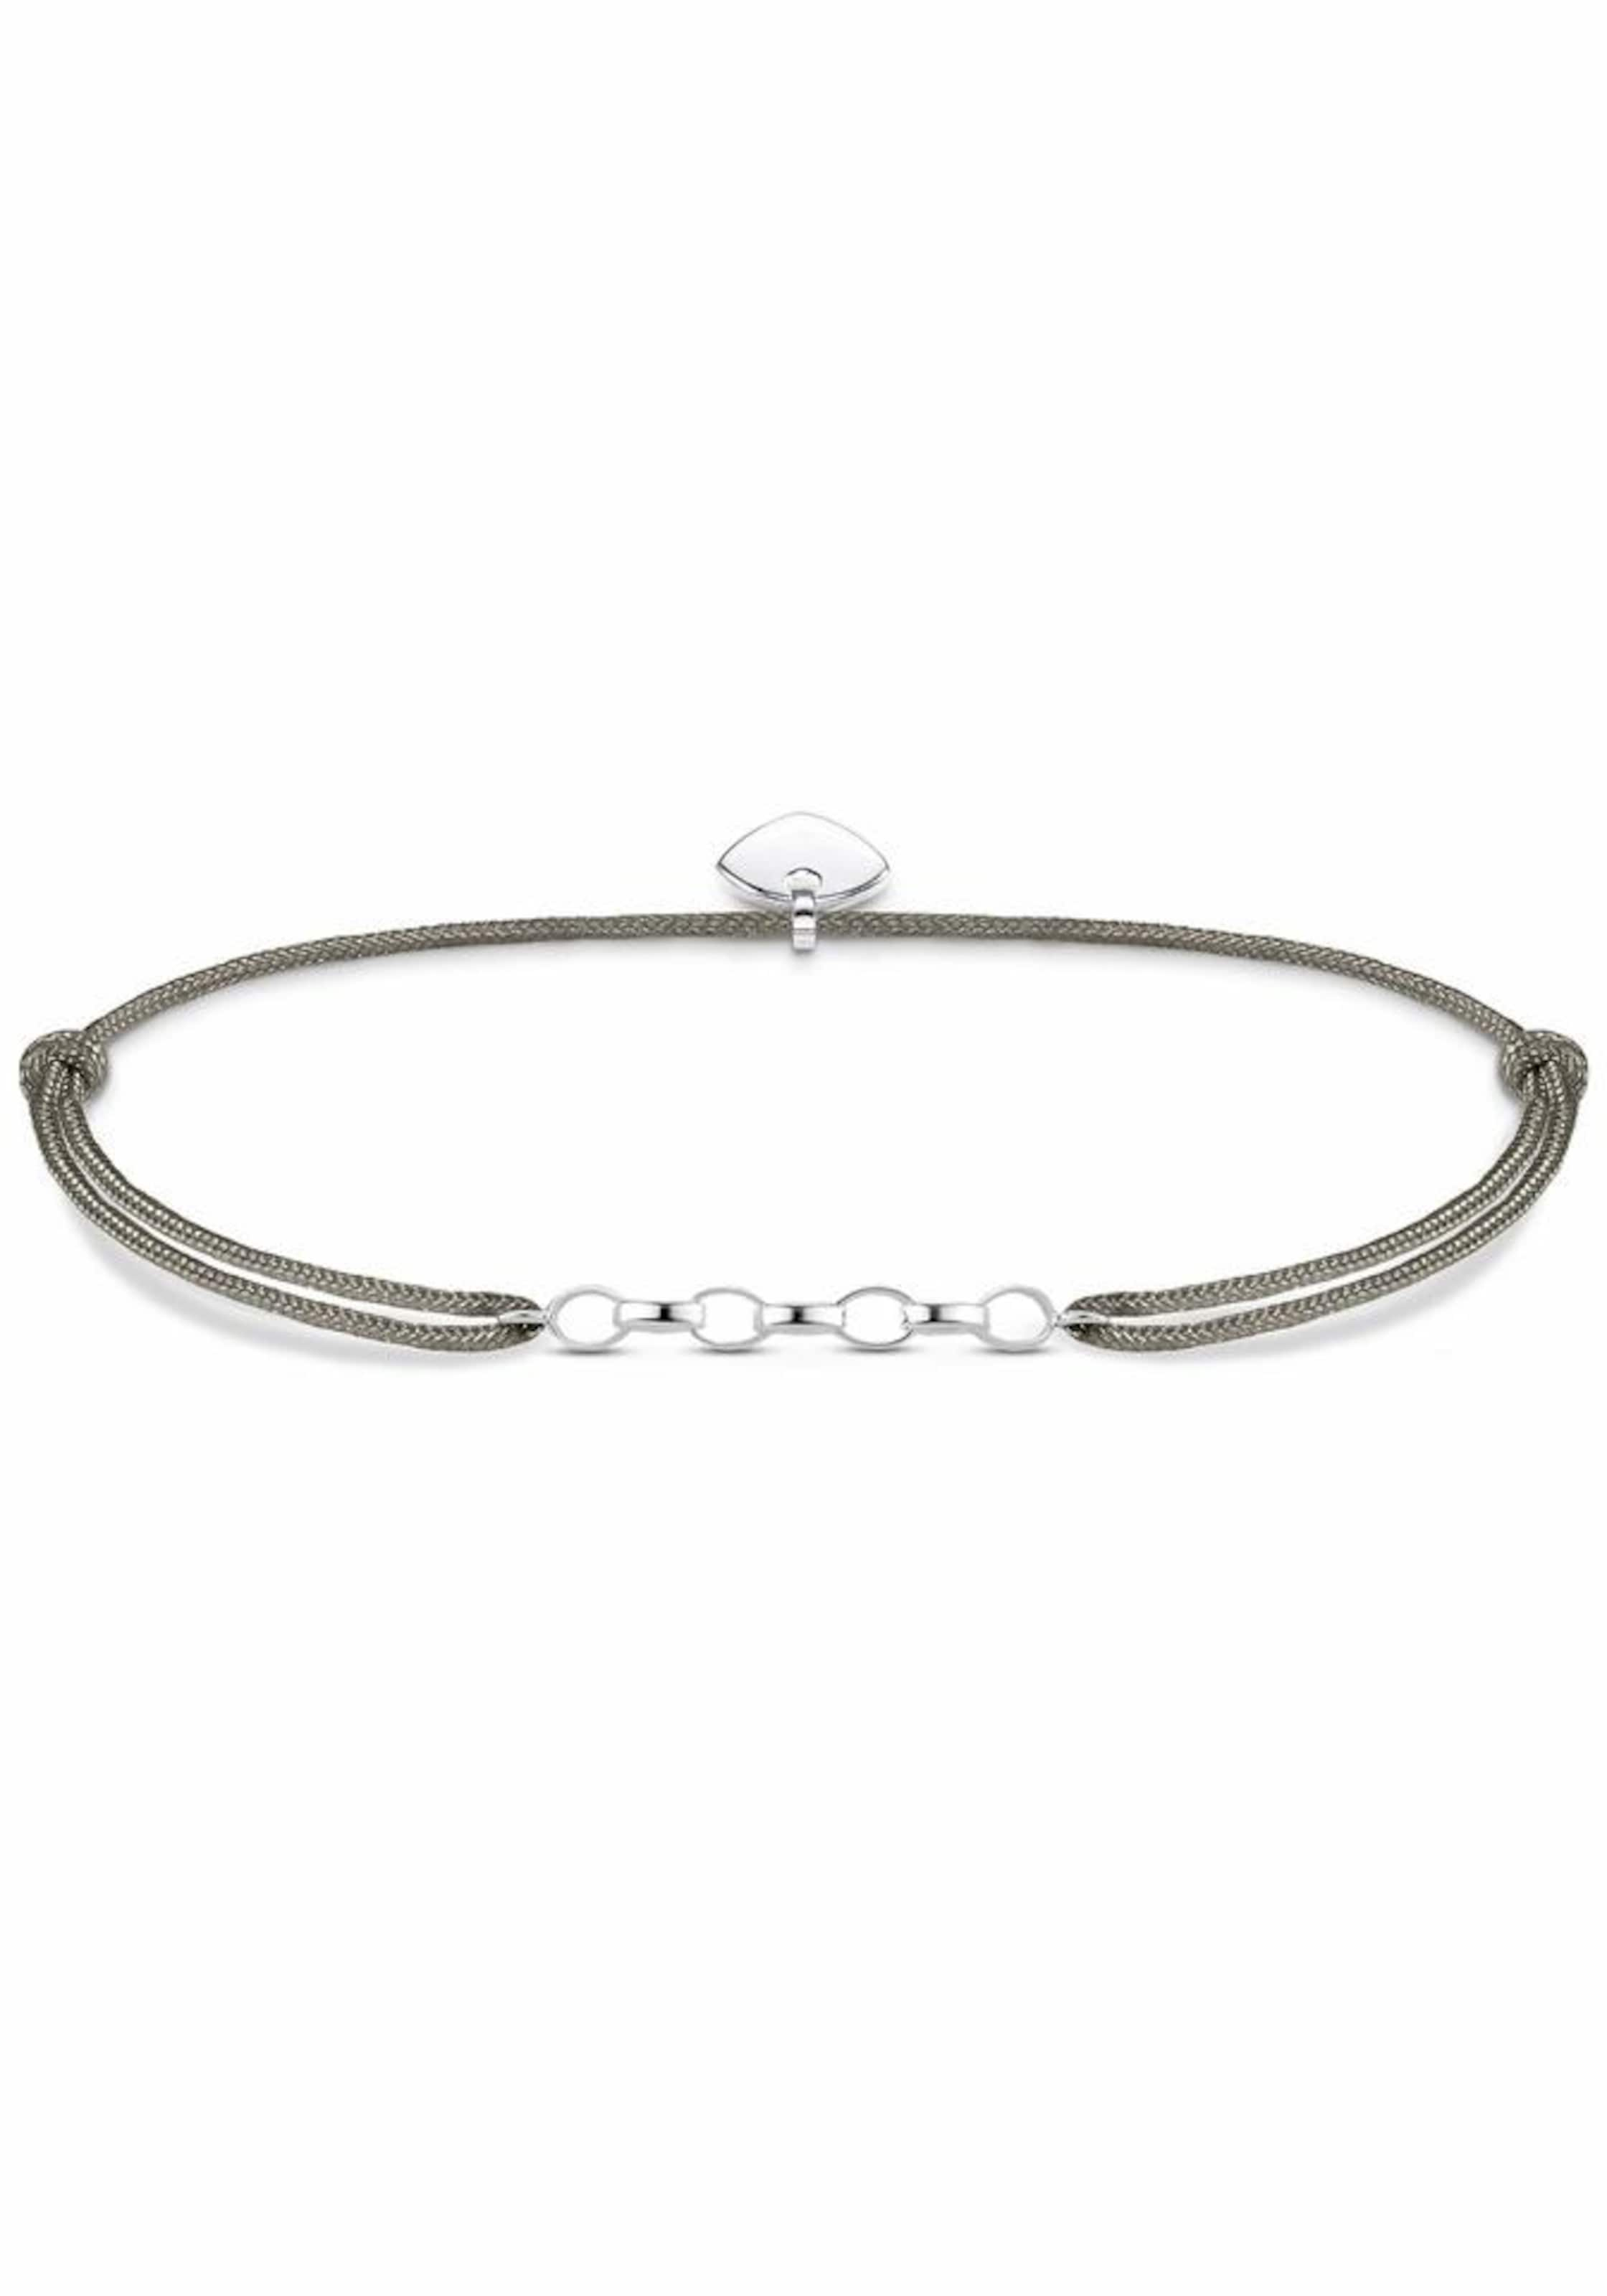 Thomas Sabo Charm-Armband 'Little Secret Herz, LS047-173-5-L20v'